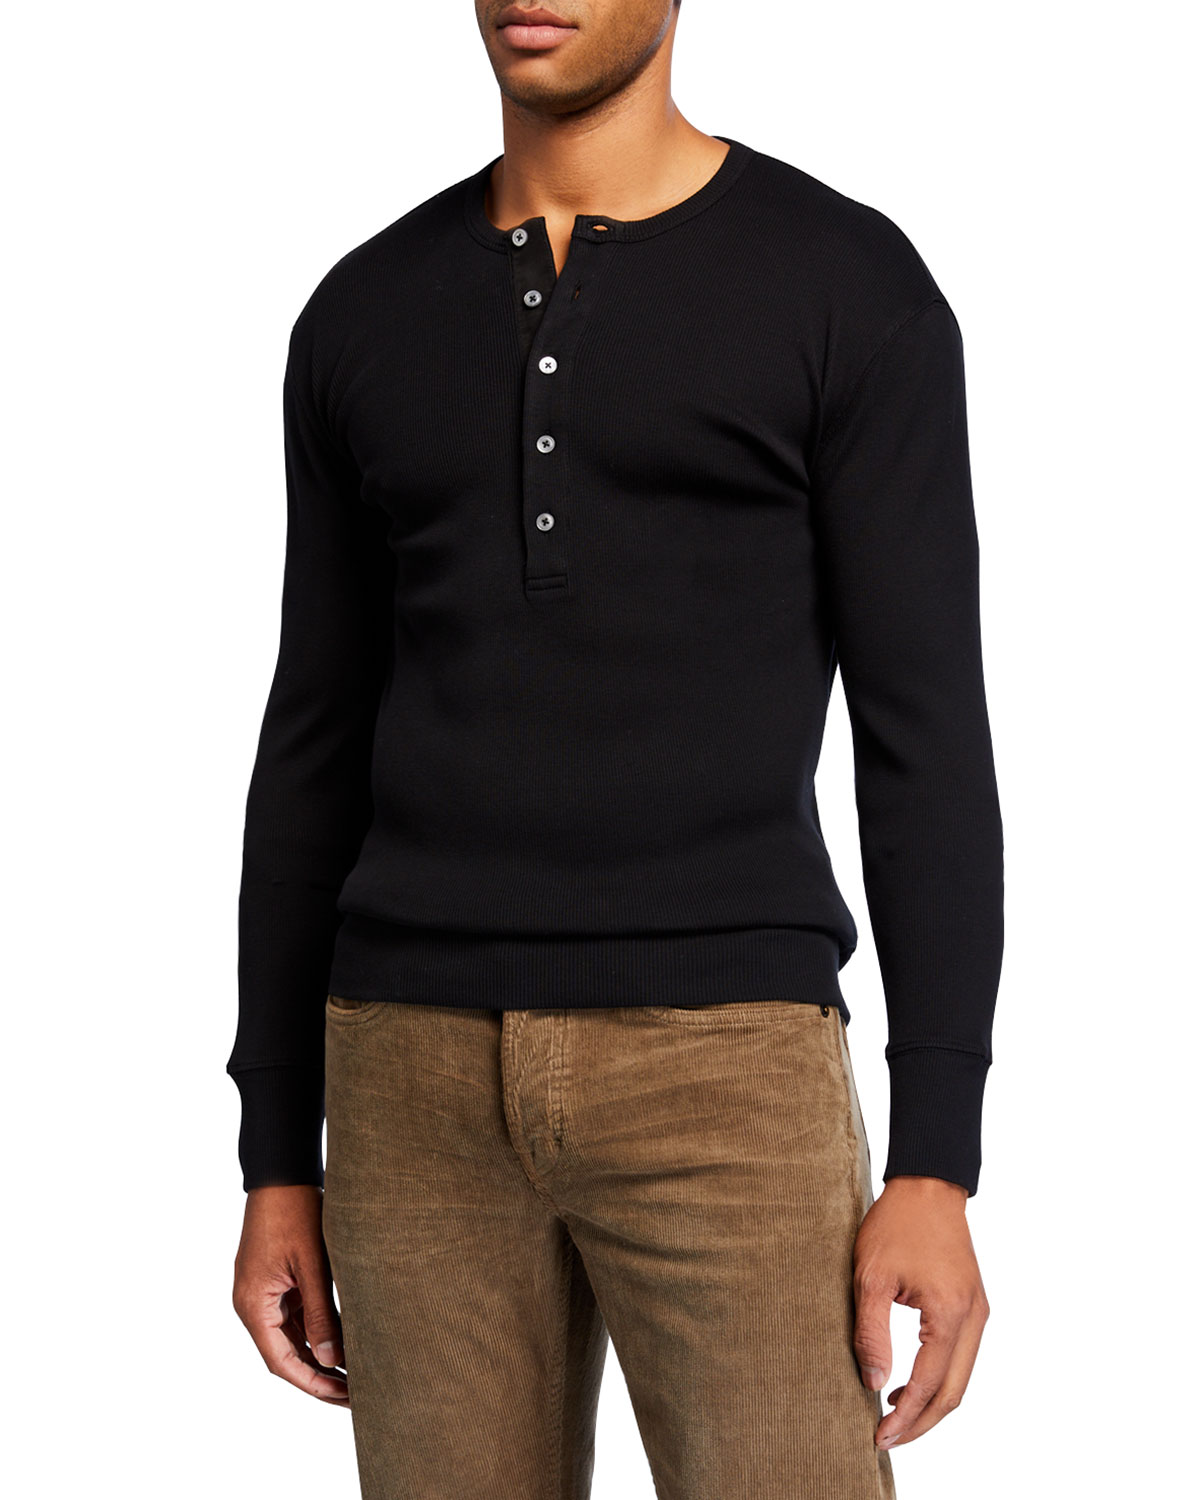 Men's Long Sleeve Cotton Henley Shirt by Tom Ford